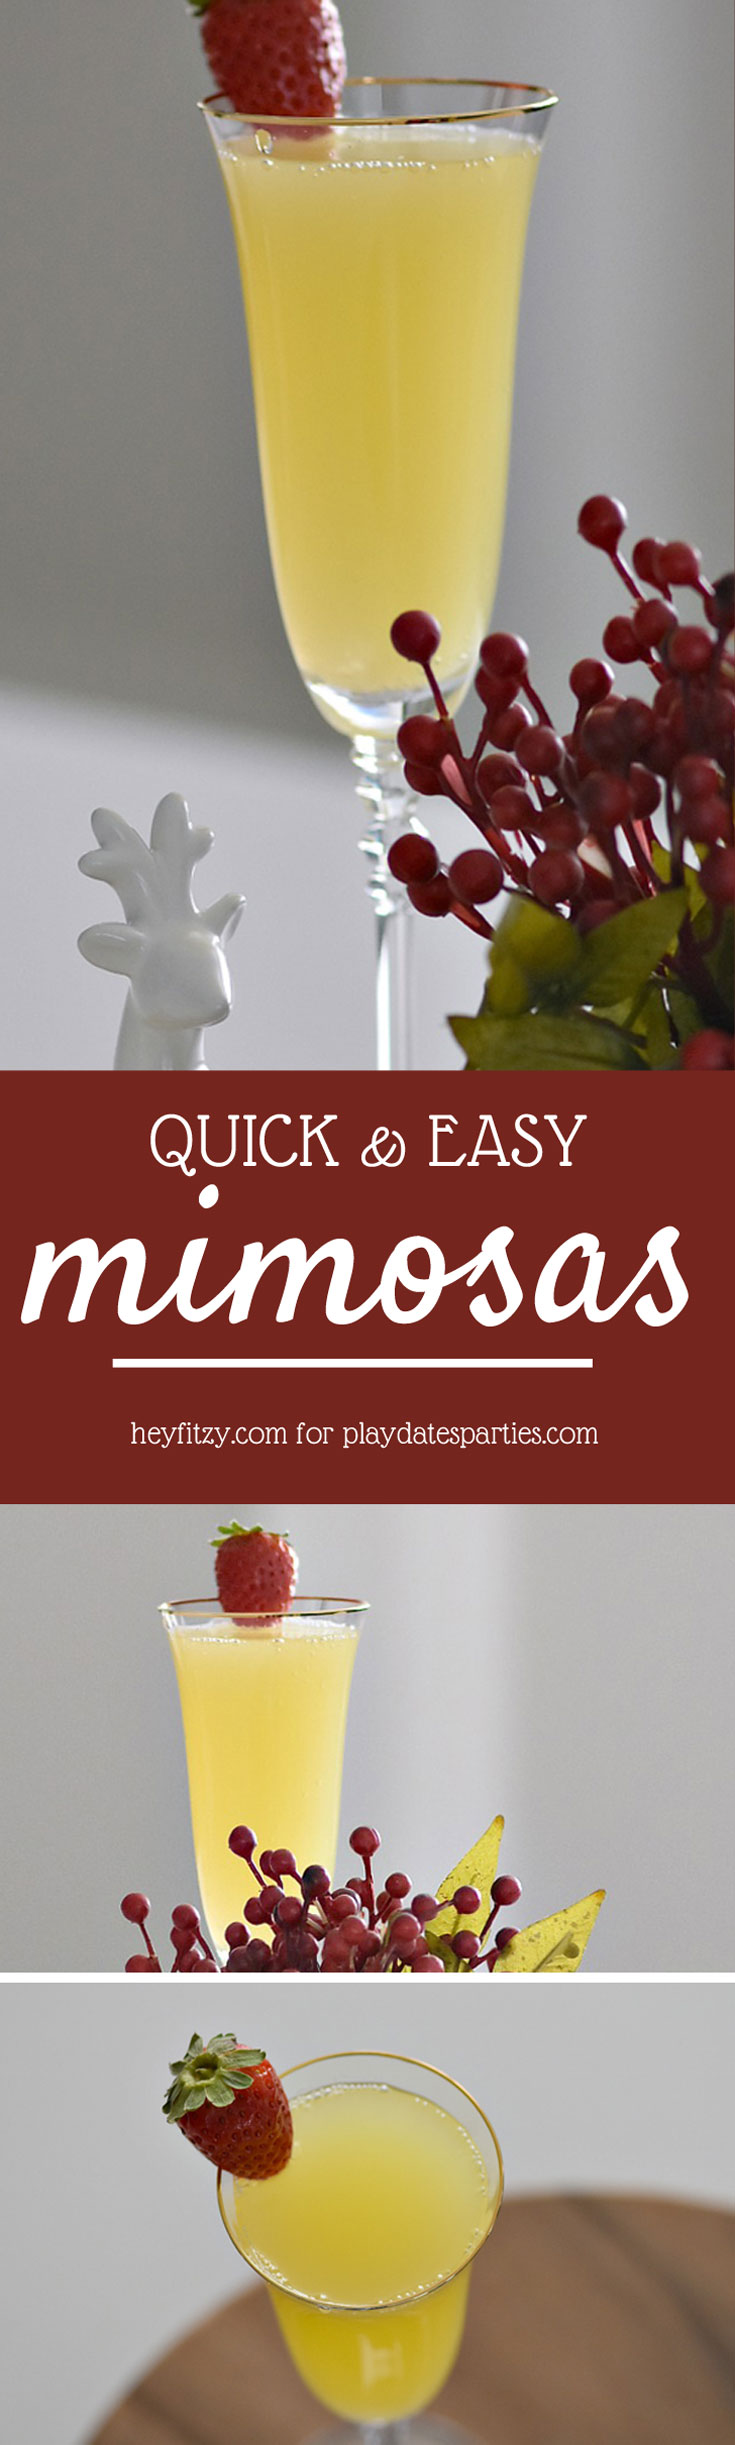 Easy mimosas are a classic and classy way to celebrate any occasion.  Make either the classic orange and champagne recipe or the kid-friendly non alcoholic version. Either way this mimosa recipe is perfect for family get-togethers at Christmas, Mother's Day, or for any other party! #mimosa #cocktailsrecipe #drinkrecipes #champagne #beverage #recipes #brunch #partycocktails